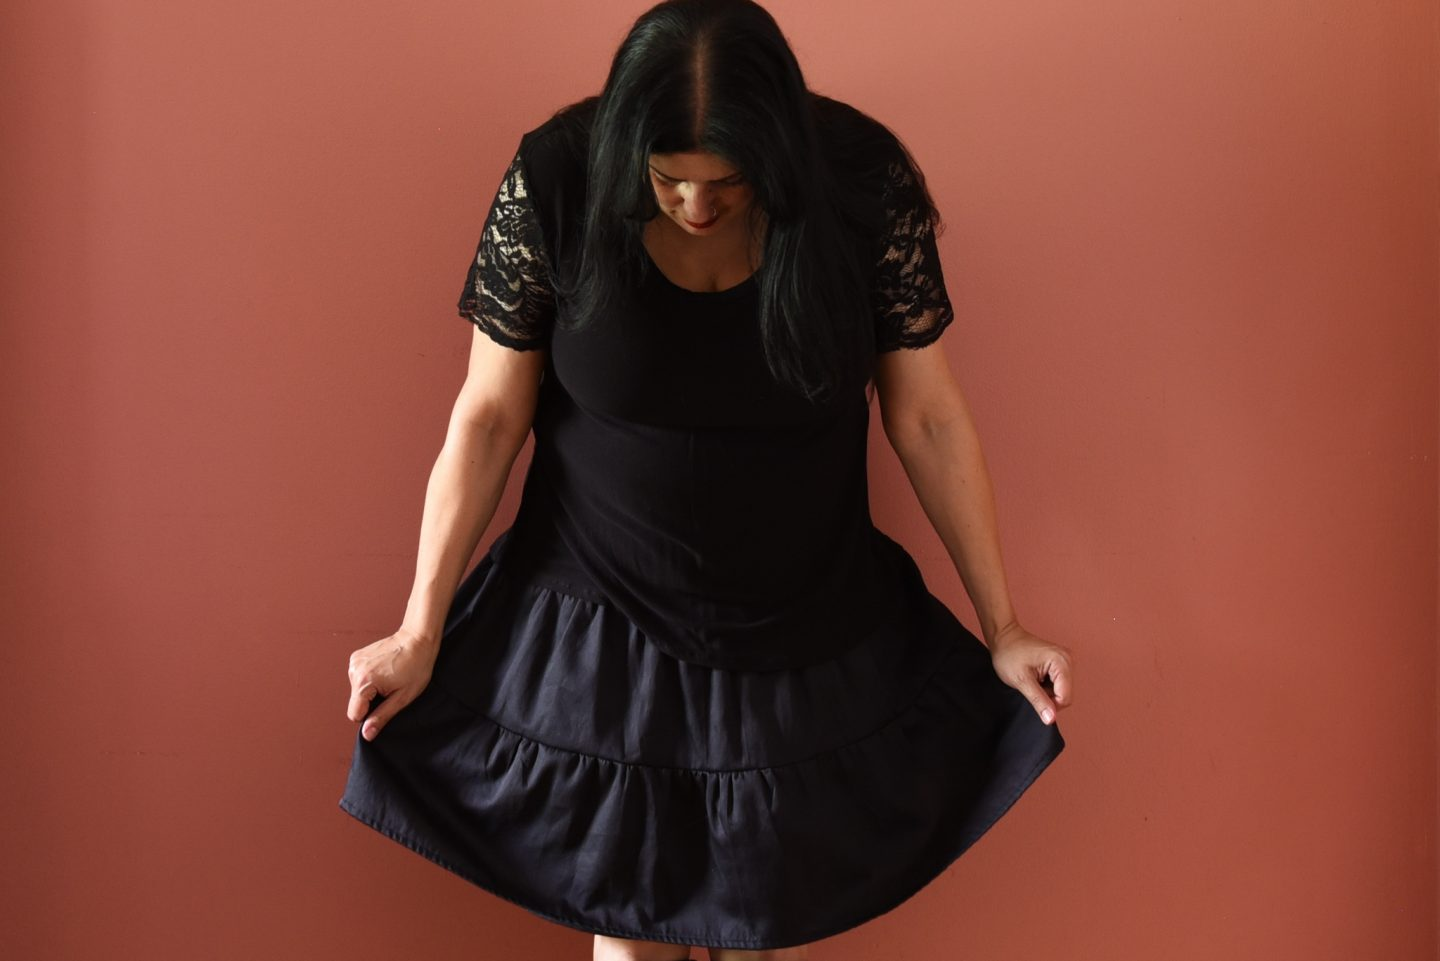 Image of a woman with long black hair looking down wearing a black top with lace sleeves, a black skirt with gathered panels, knee-high black books standing in front of a pink wall.